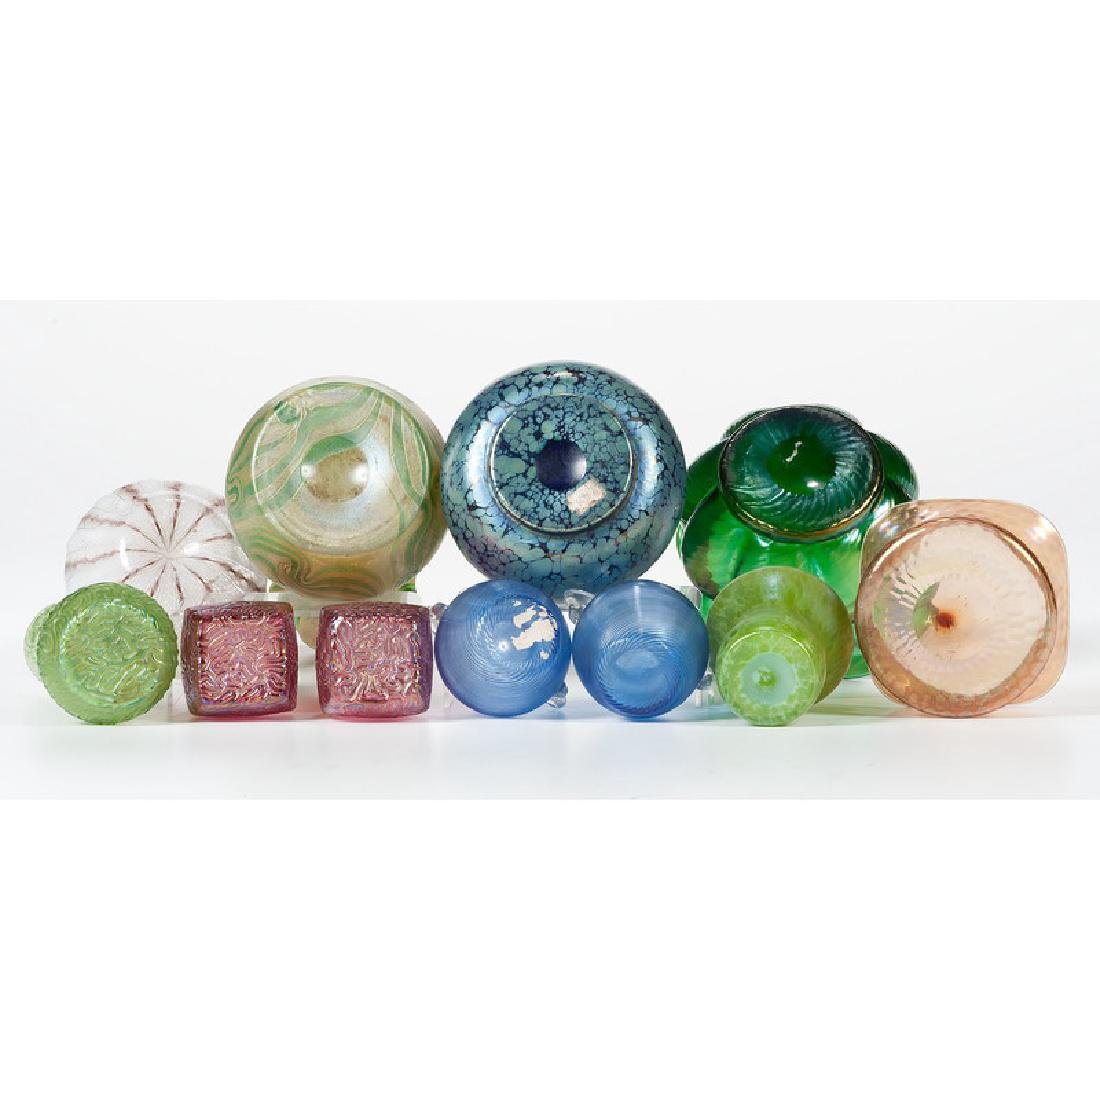 Art Glass Vases and Bowls - 3